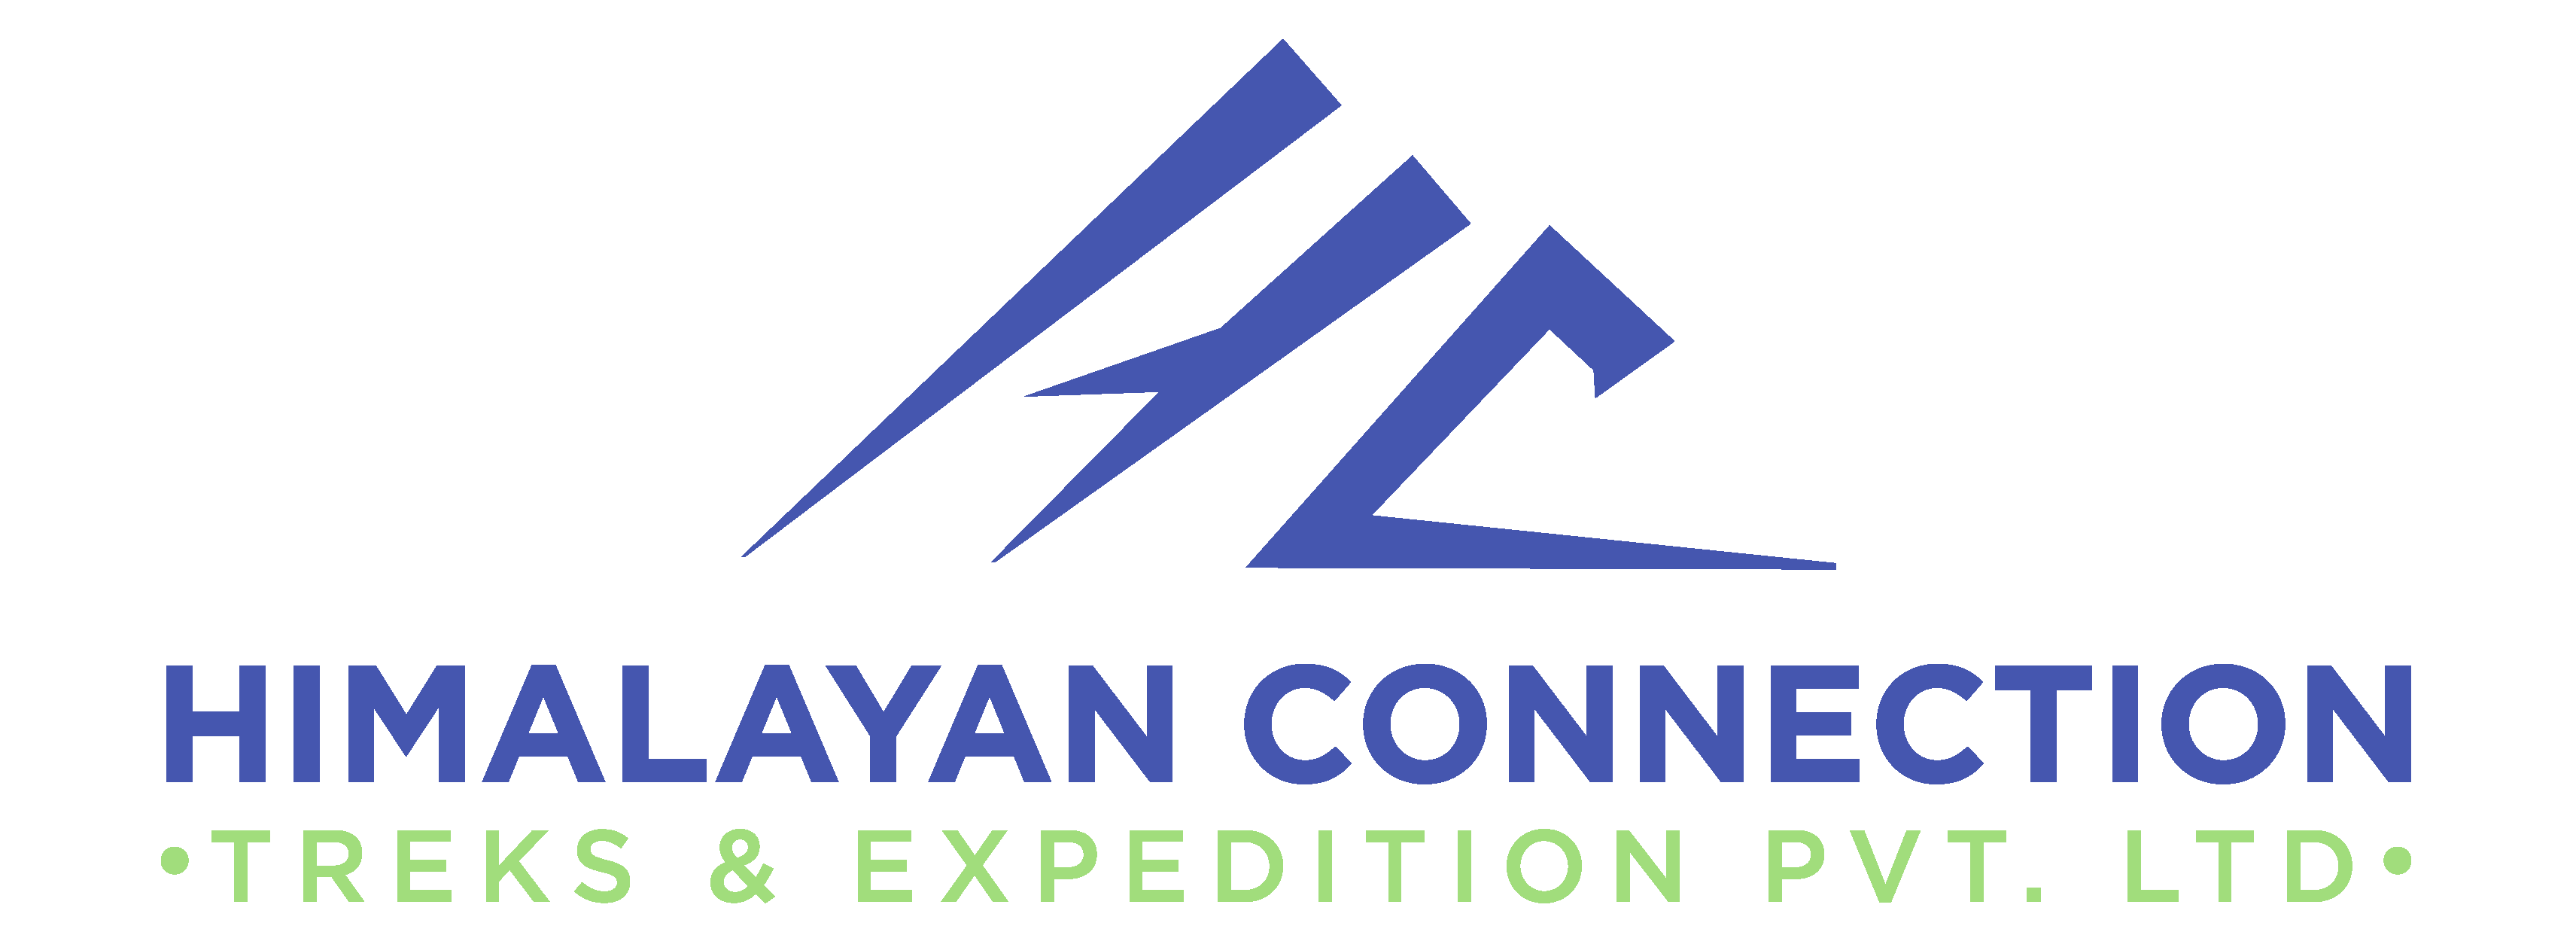 HImalayan Connection